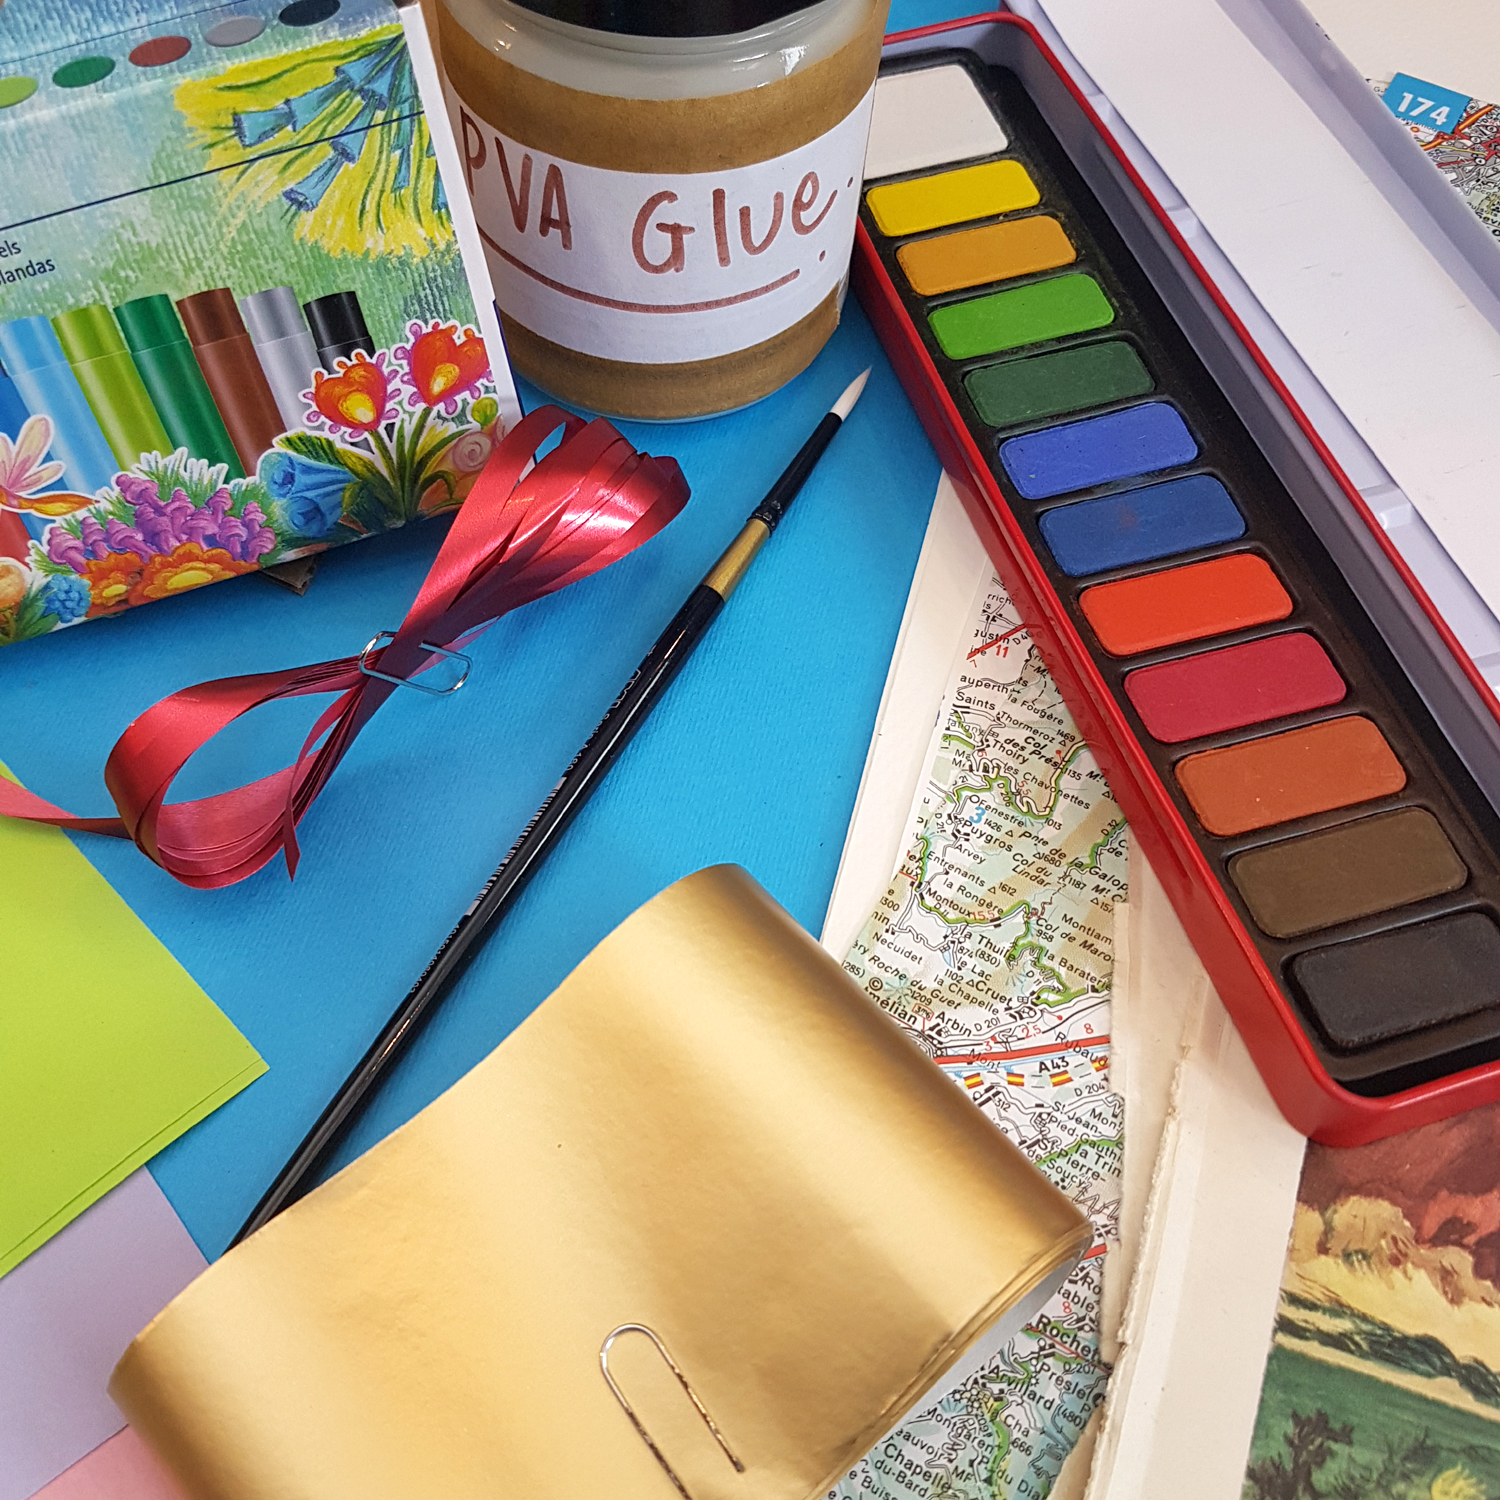 pva glue paints oil pastels and lots of pretty paper